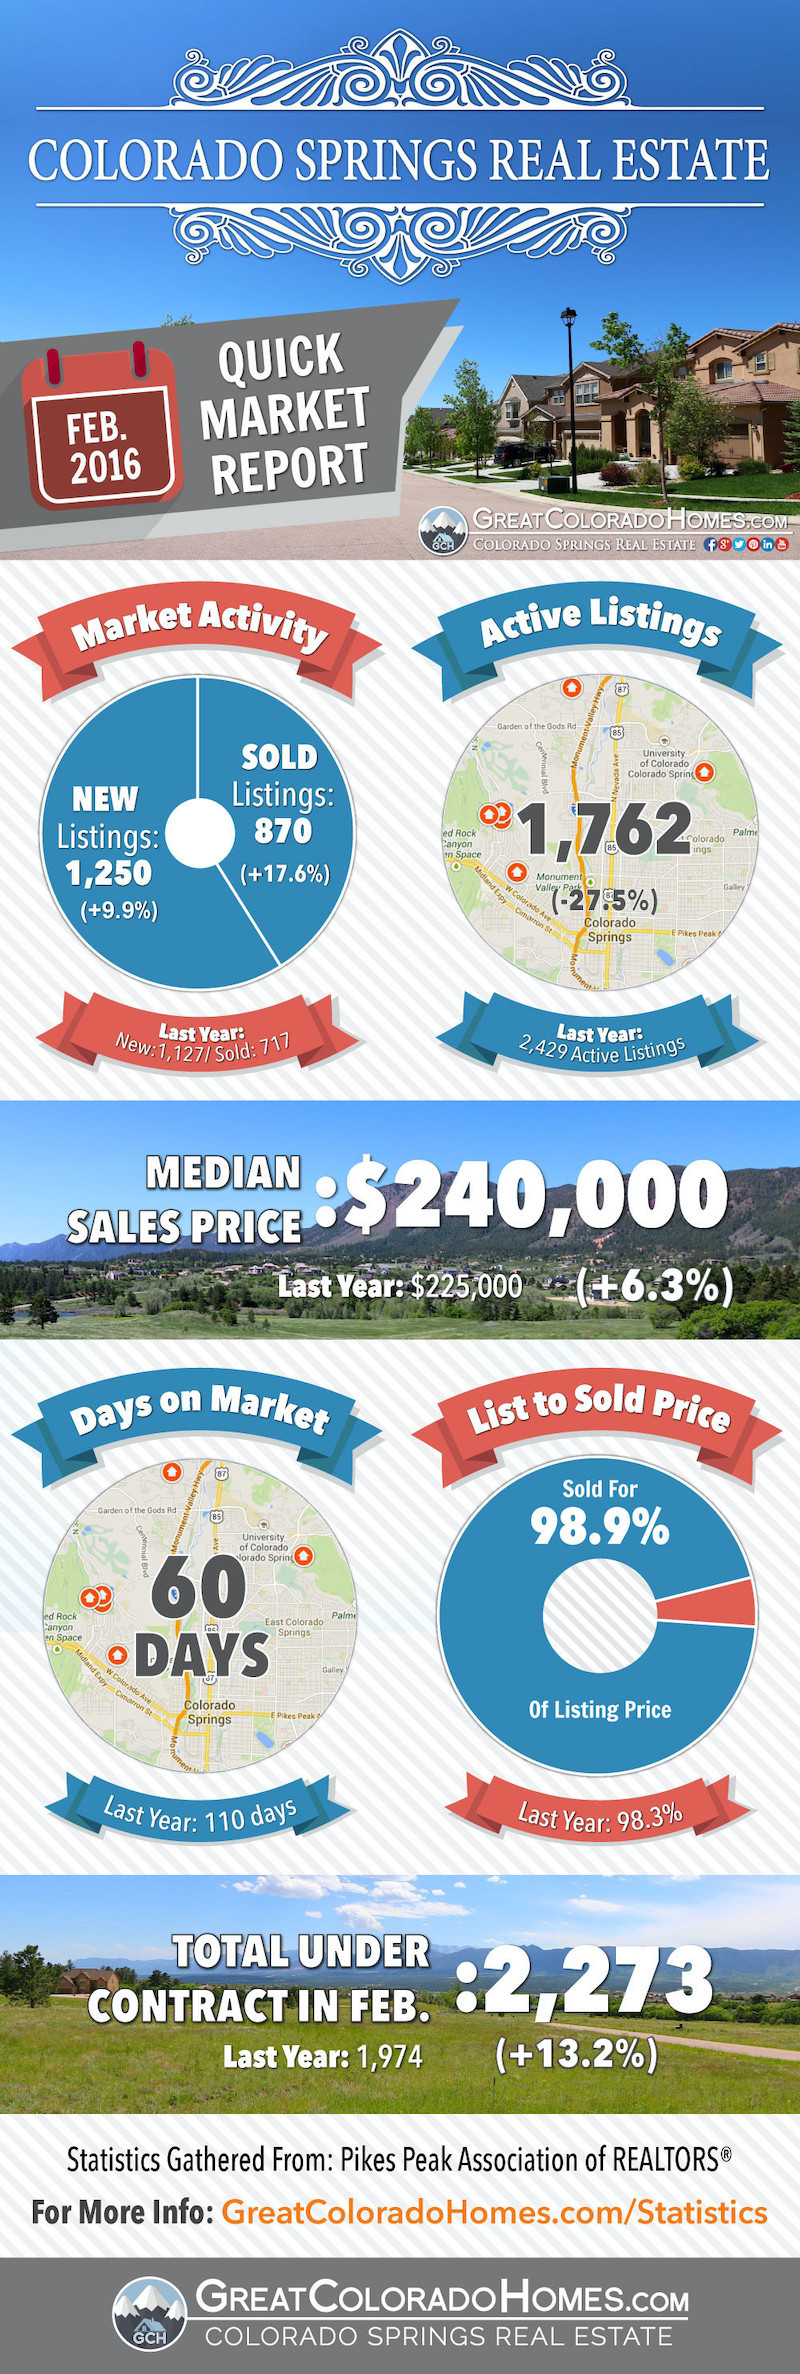 February 2016 Colorado Springs Real Estate Market Report